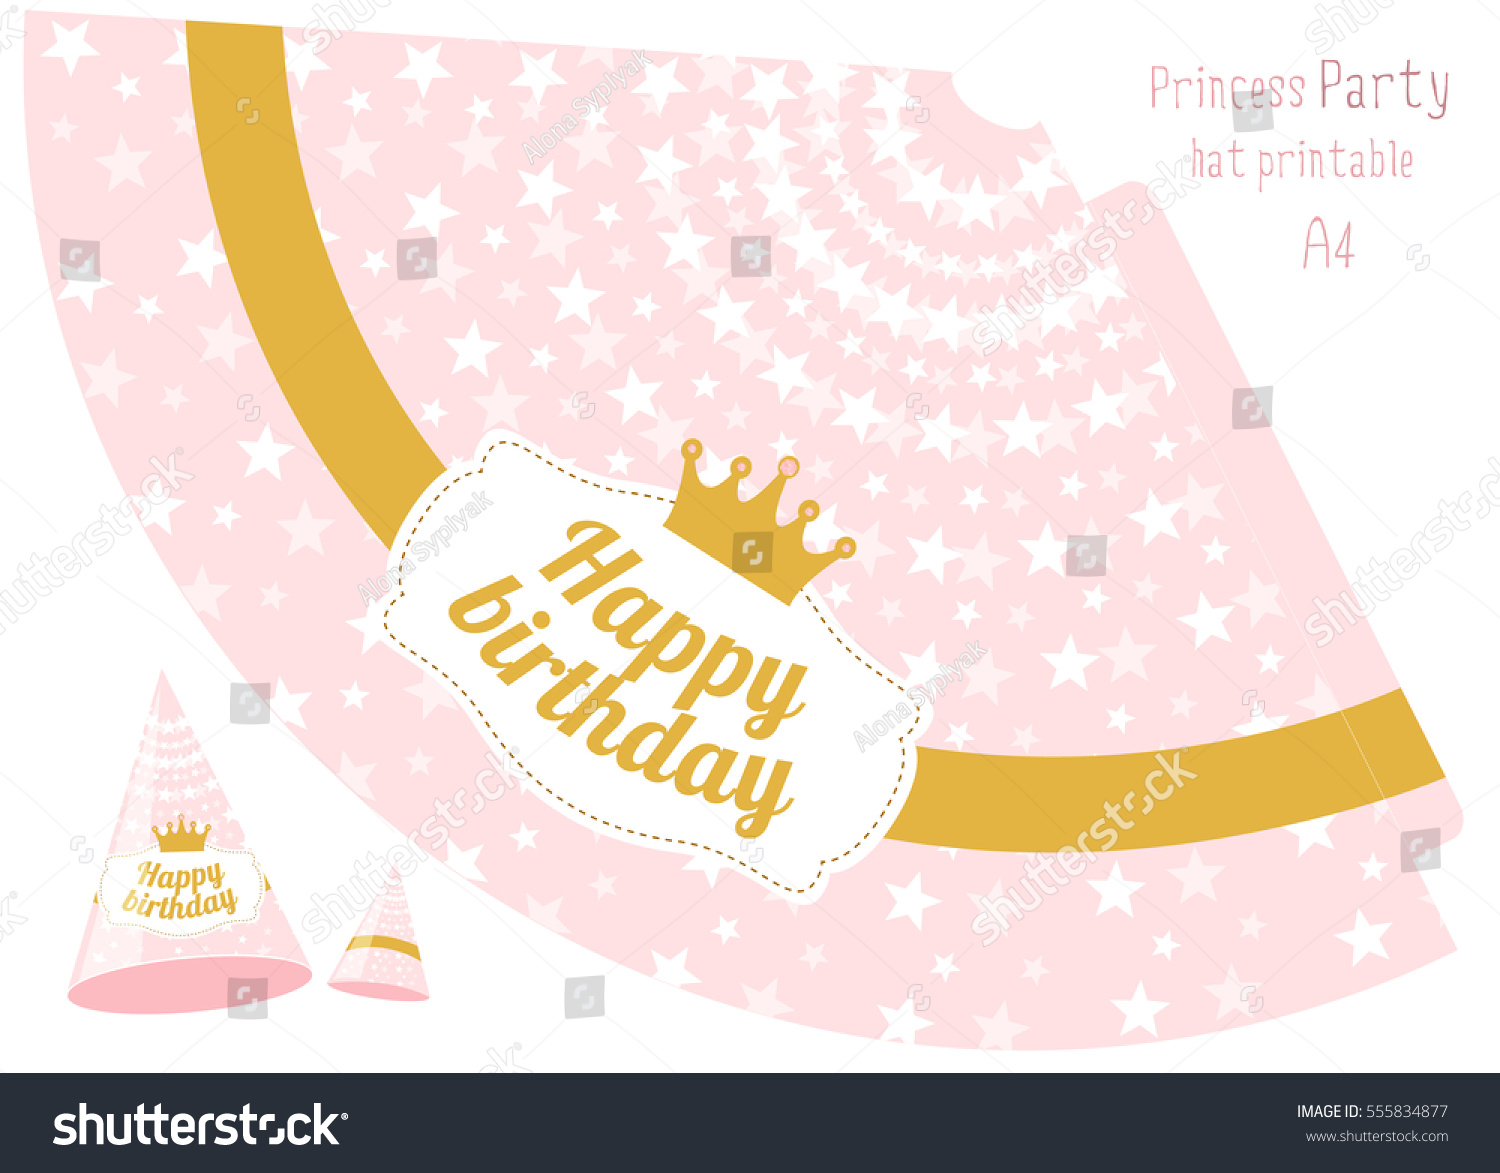 Party Hats V Printable Pink Gold Stock Vector (Royalty Free ...